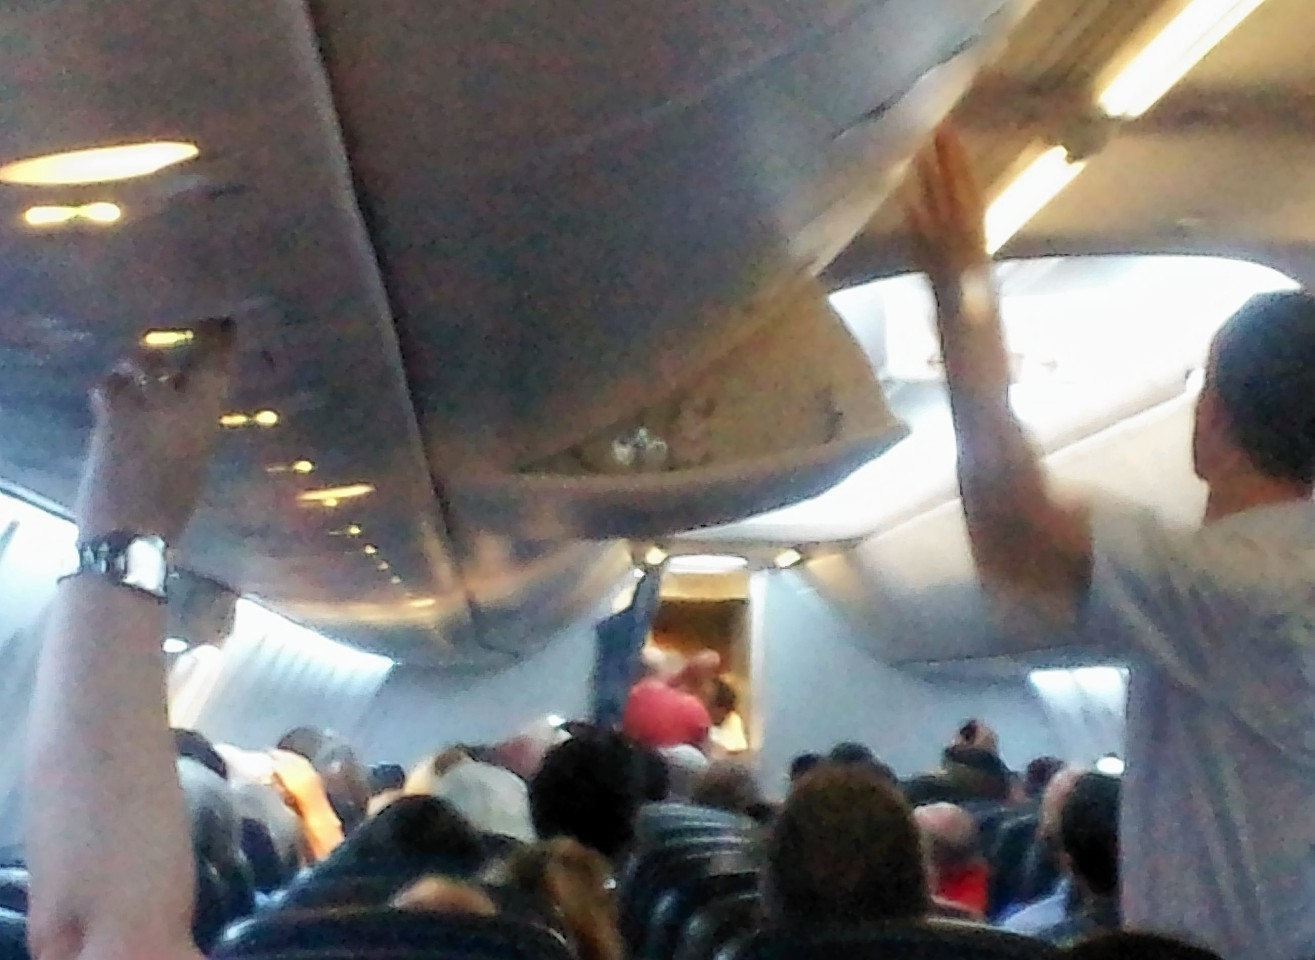 Police enter the aircraft after it was diverted to London